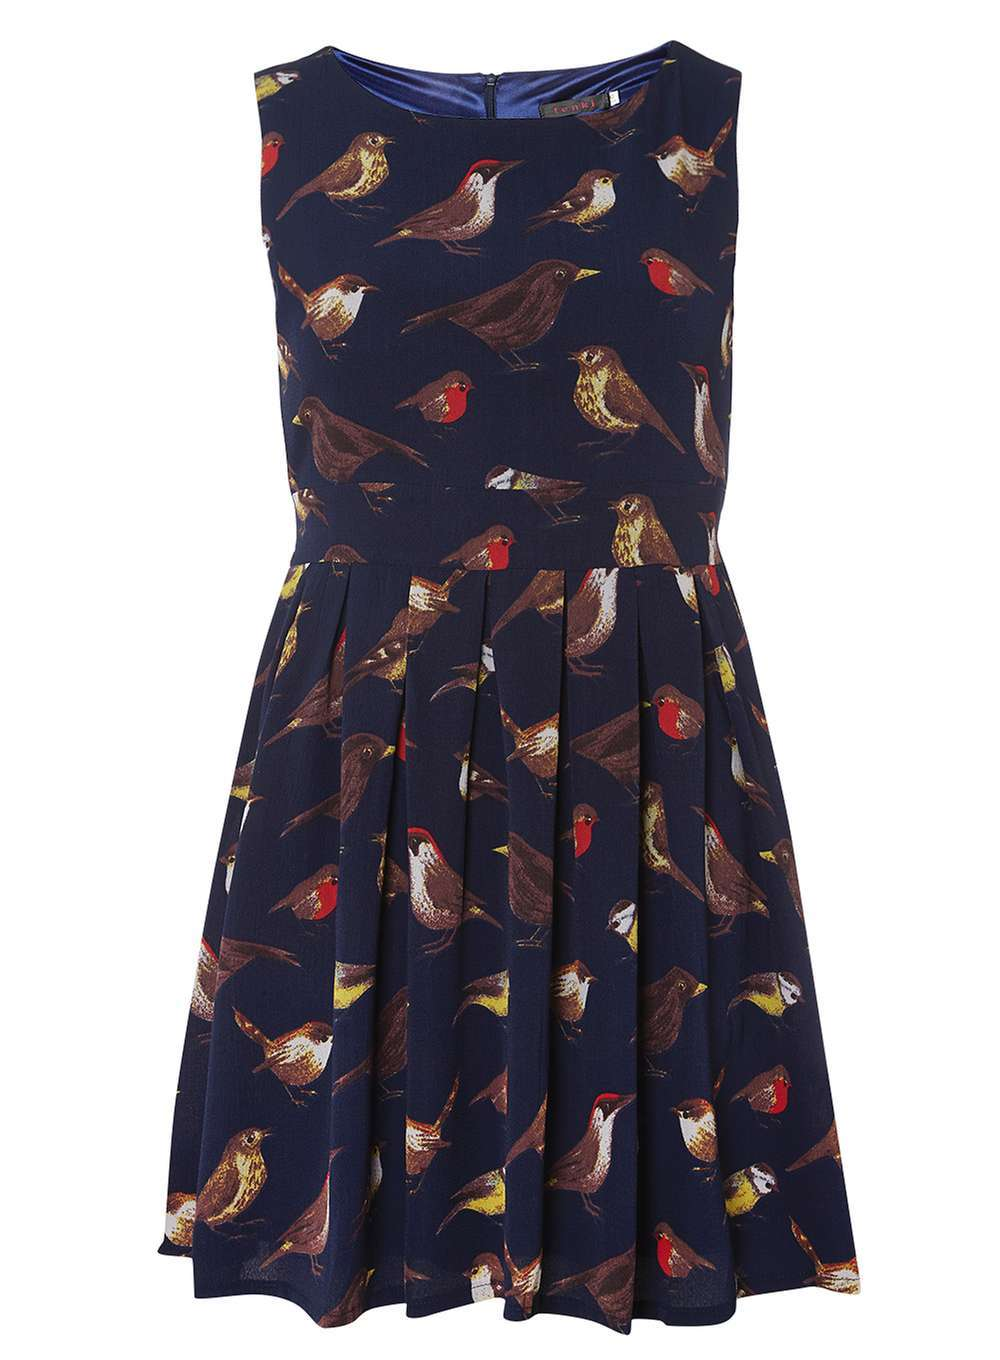 Womens **Tenki Bird Print Dress Blue - length: mid thigh; neckline: round neck; sleeve style: sleeveless; predominant colour: navy; secondary colour: chocolate brown; occasions: casual; fit: fitted at waist & bust; style: fit & flare; fibres: polyester/polyamide - 100%; hip detail: subtle/flattering hip detail; sleeve length: sleeveless; pattern type: fabric; pattern: patterned/print; texture group: jersey - stretchy/drapey; multicoloured: multicoloured; season: a/w 2016; wardrobe: highlight